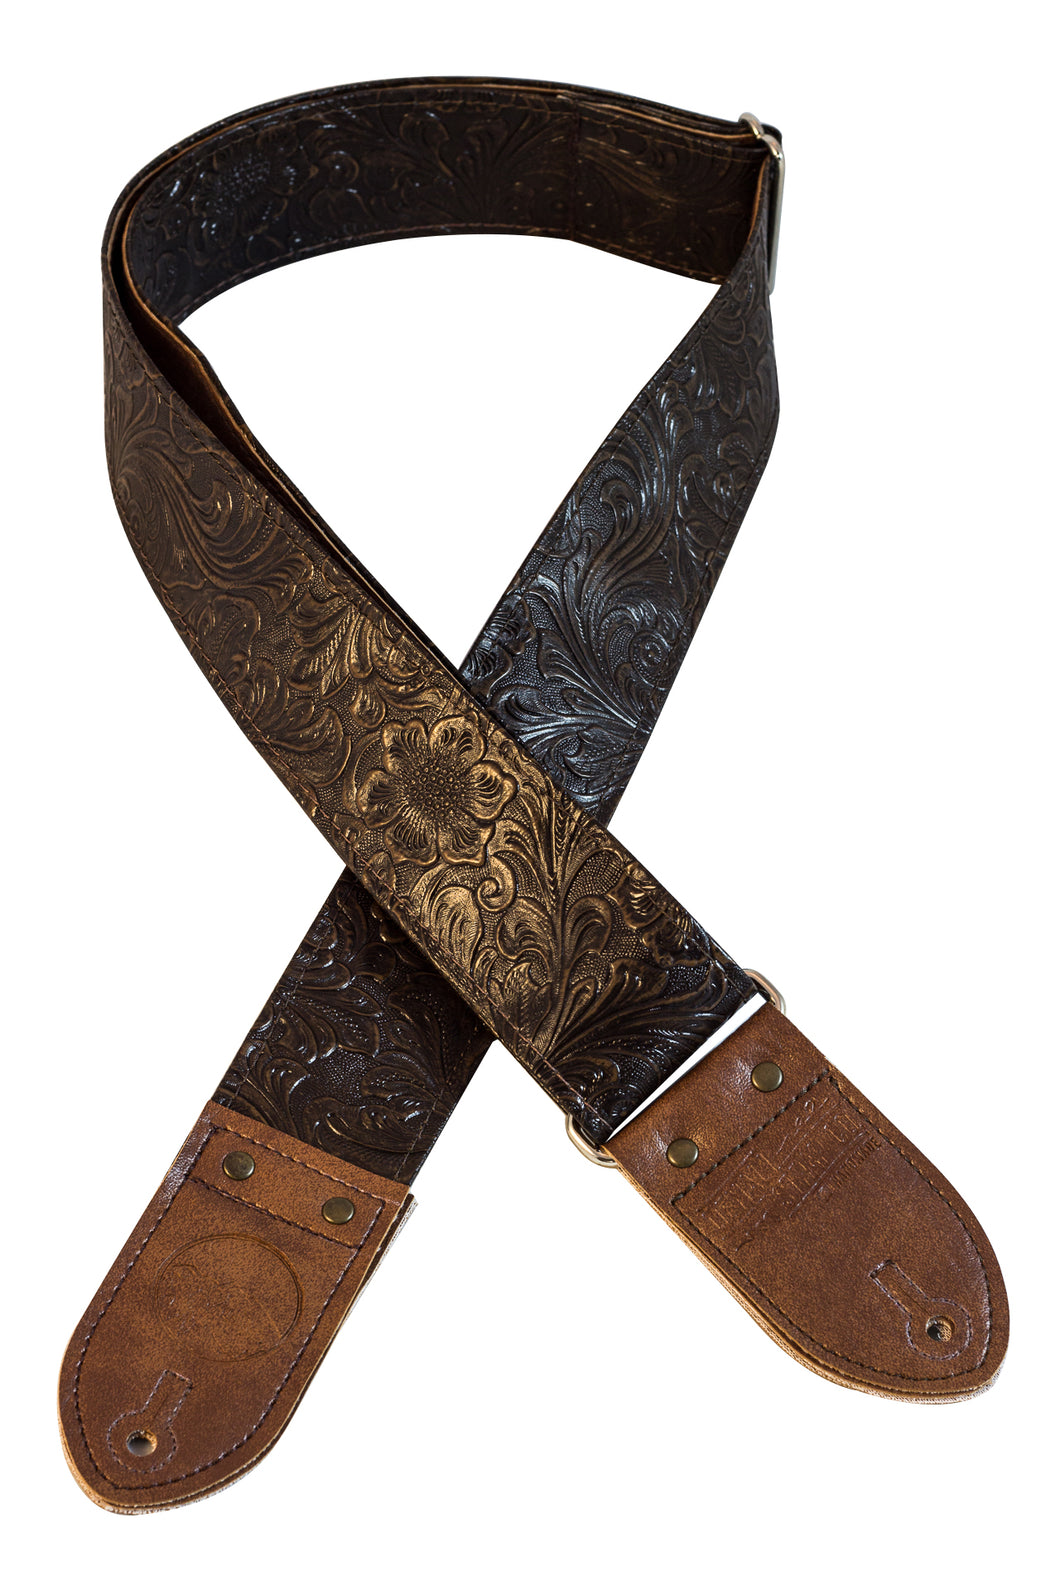 The Dark Brown Western Guitar Strap